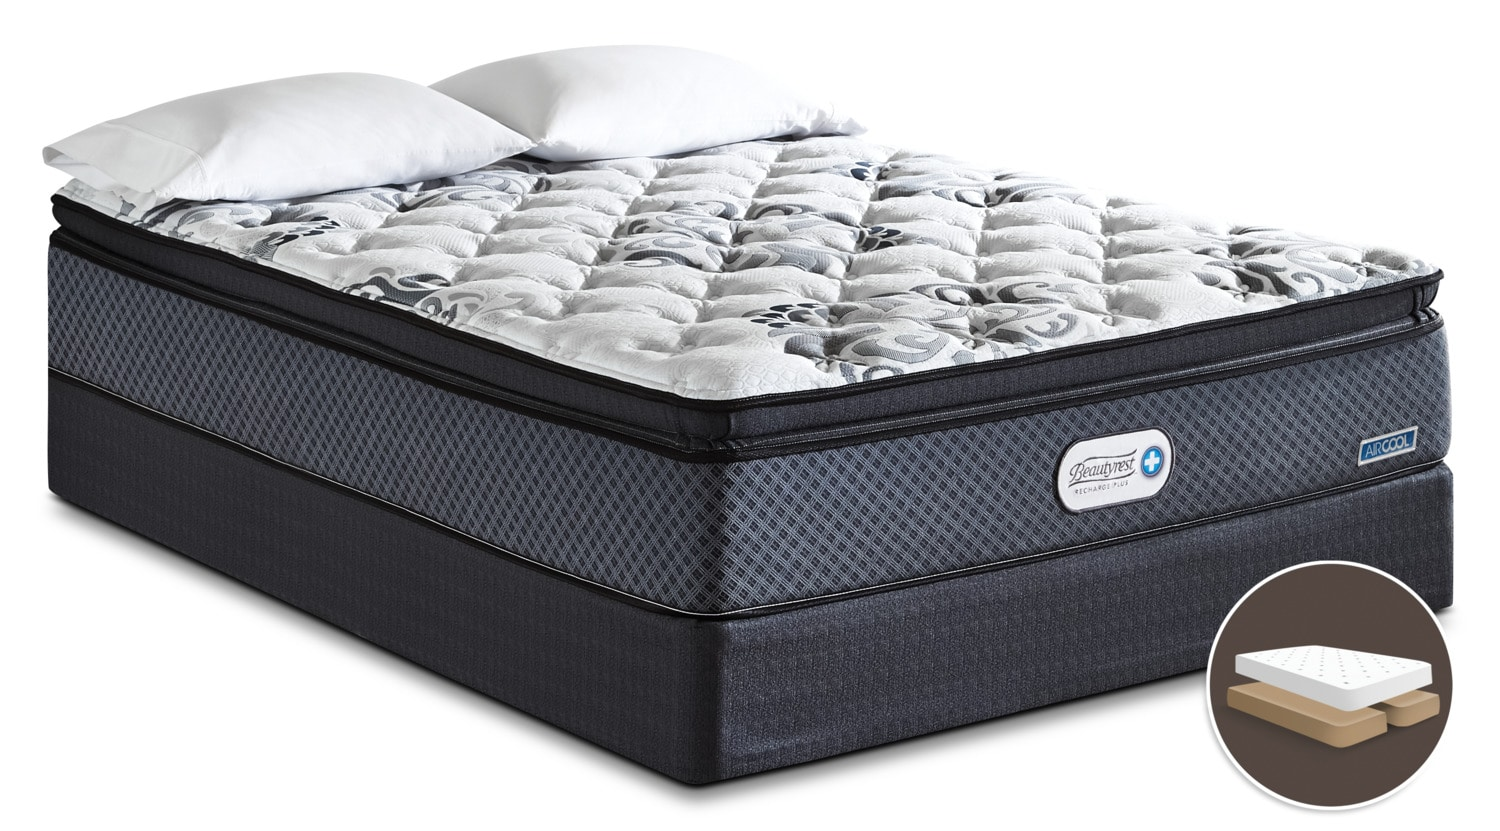 Beautyrest Recharge Inspire Hi-Loft Pillow-Top Firm Split Queen Mattress Set